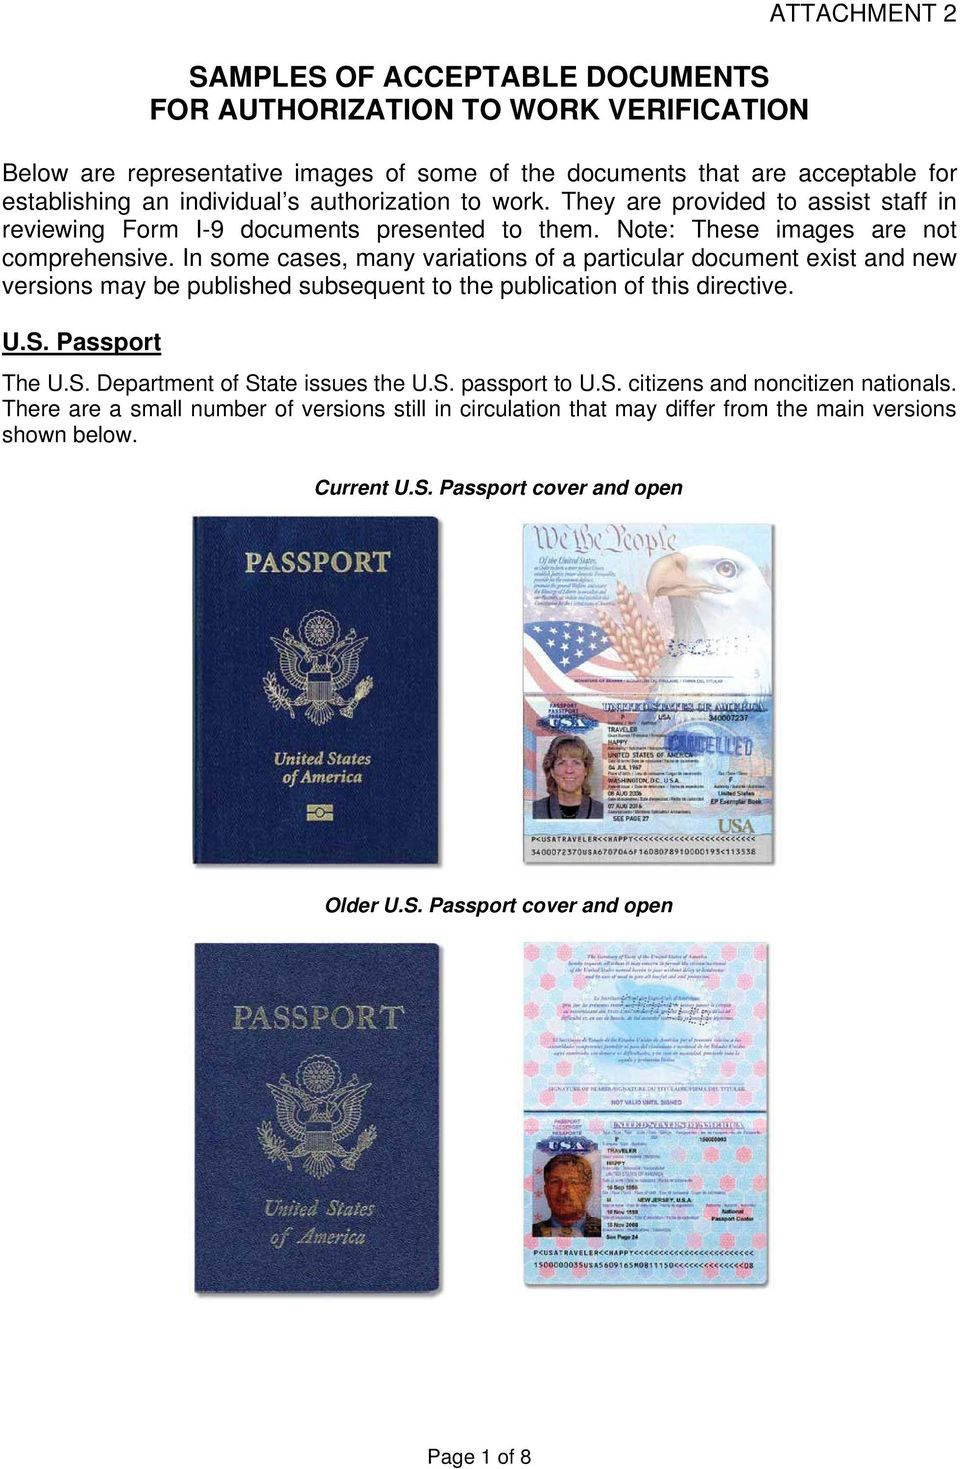 In some cases, many variations of a particular document exist and new versions may be published subsequent to the publication of this directive. U.S. Passport The U.S. Department of State issues the U.